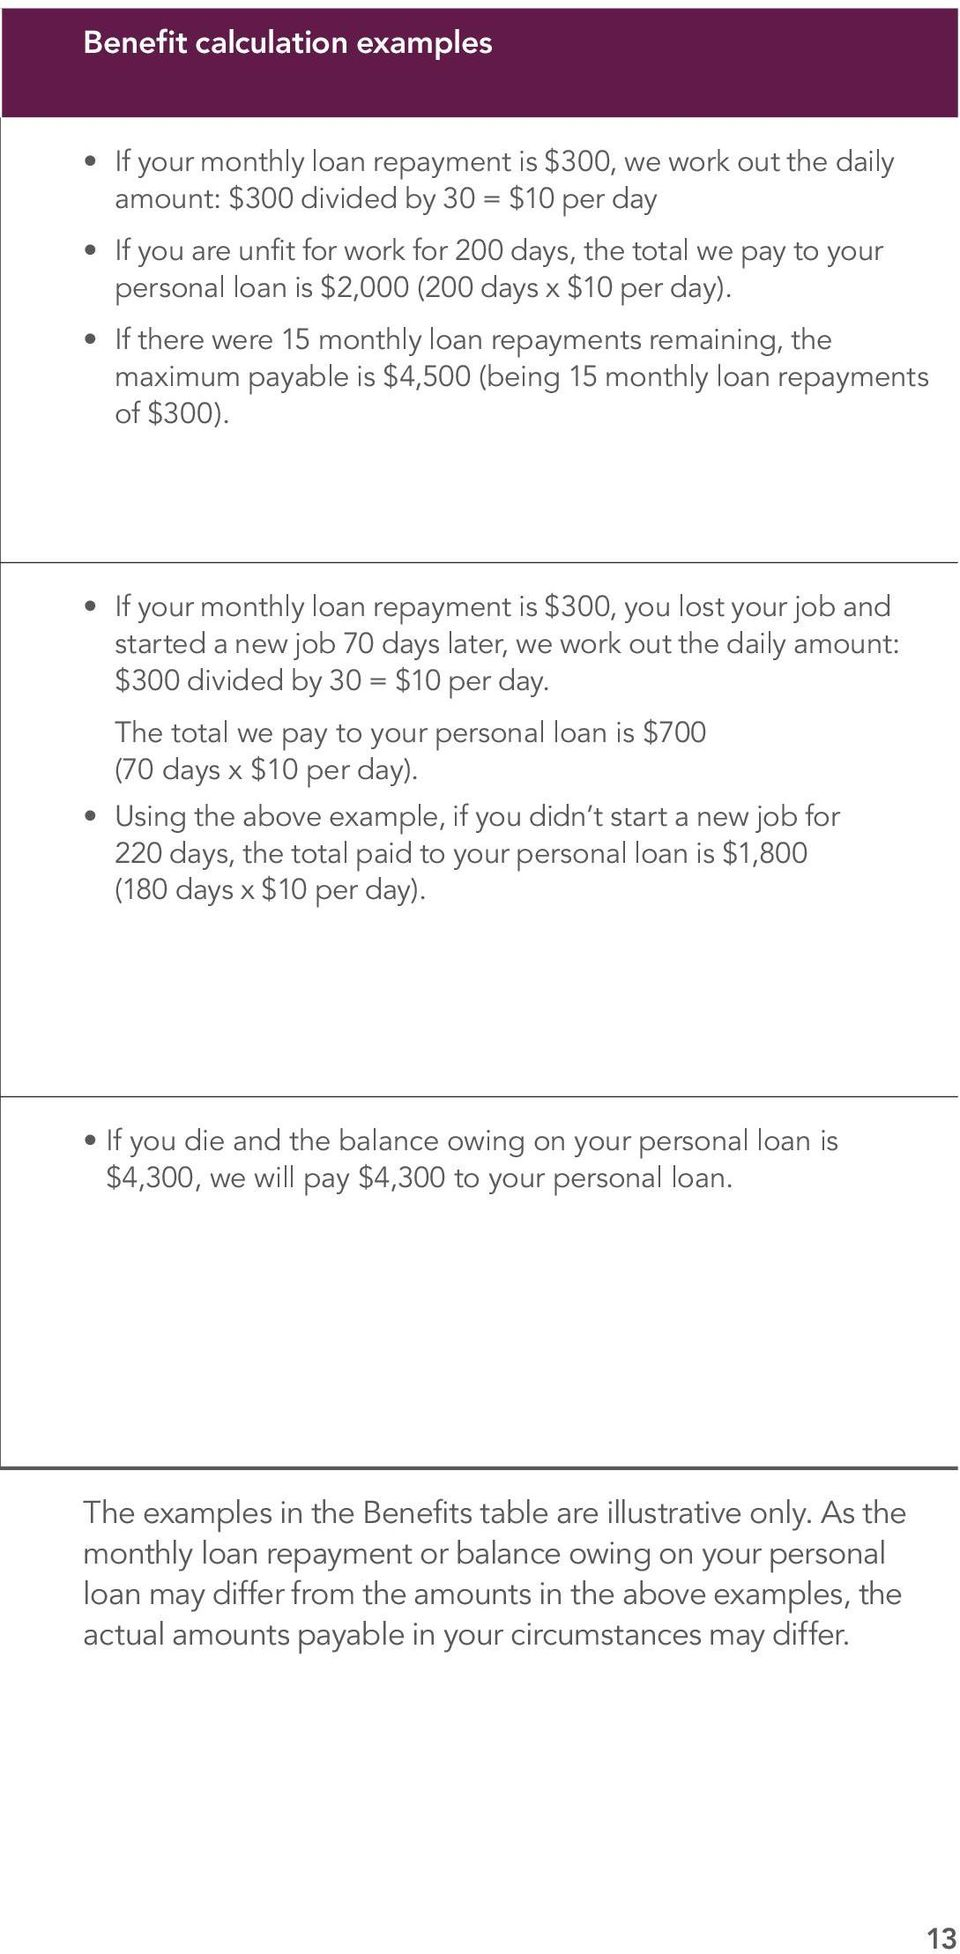 If your monthly loan repayment is $300, you lost your job and started a new job 70 days later, we work out the daily amount: $300 divided by 30 = $10 per day.